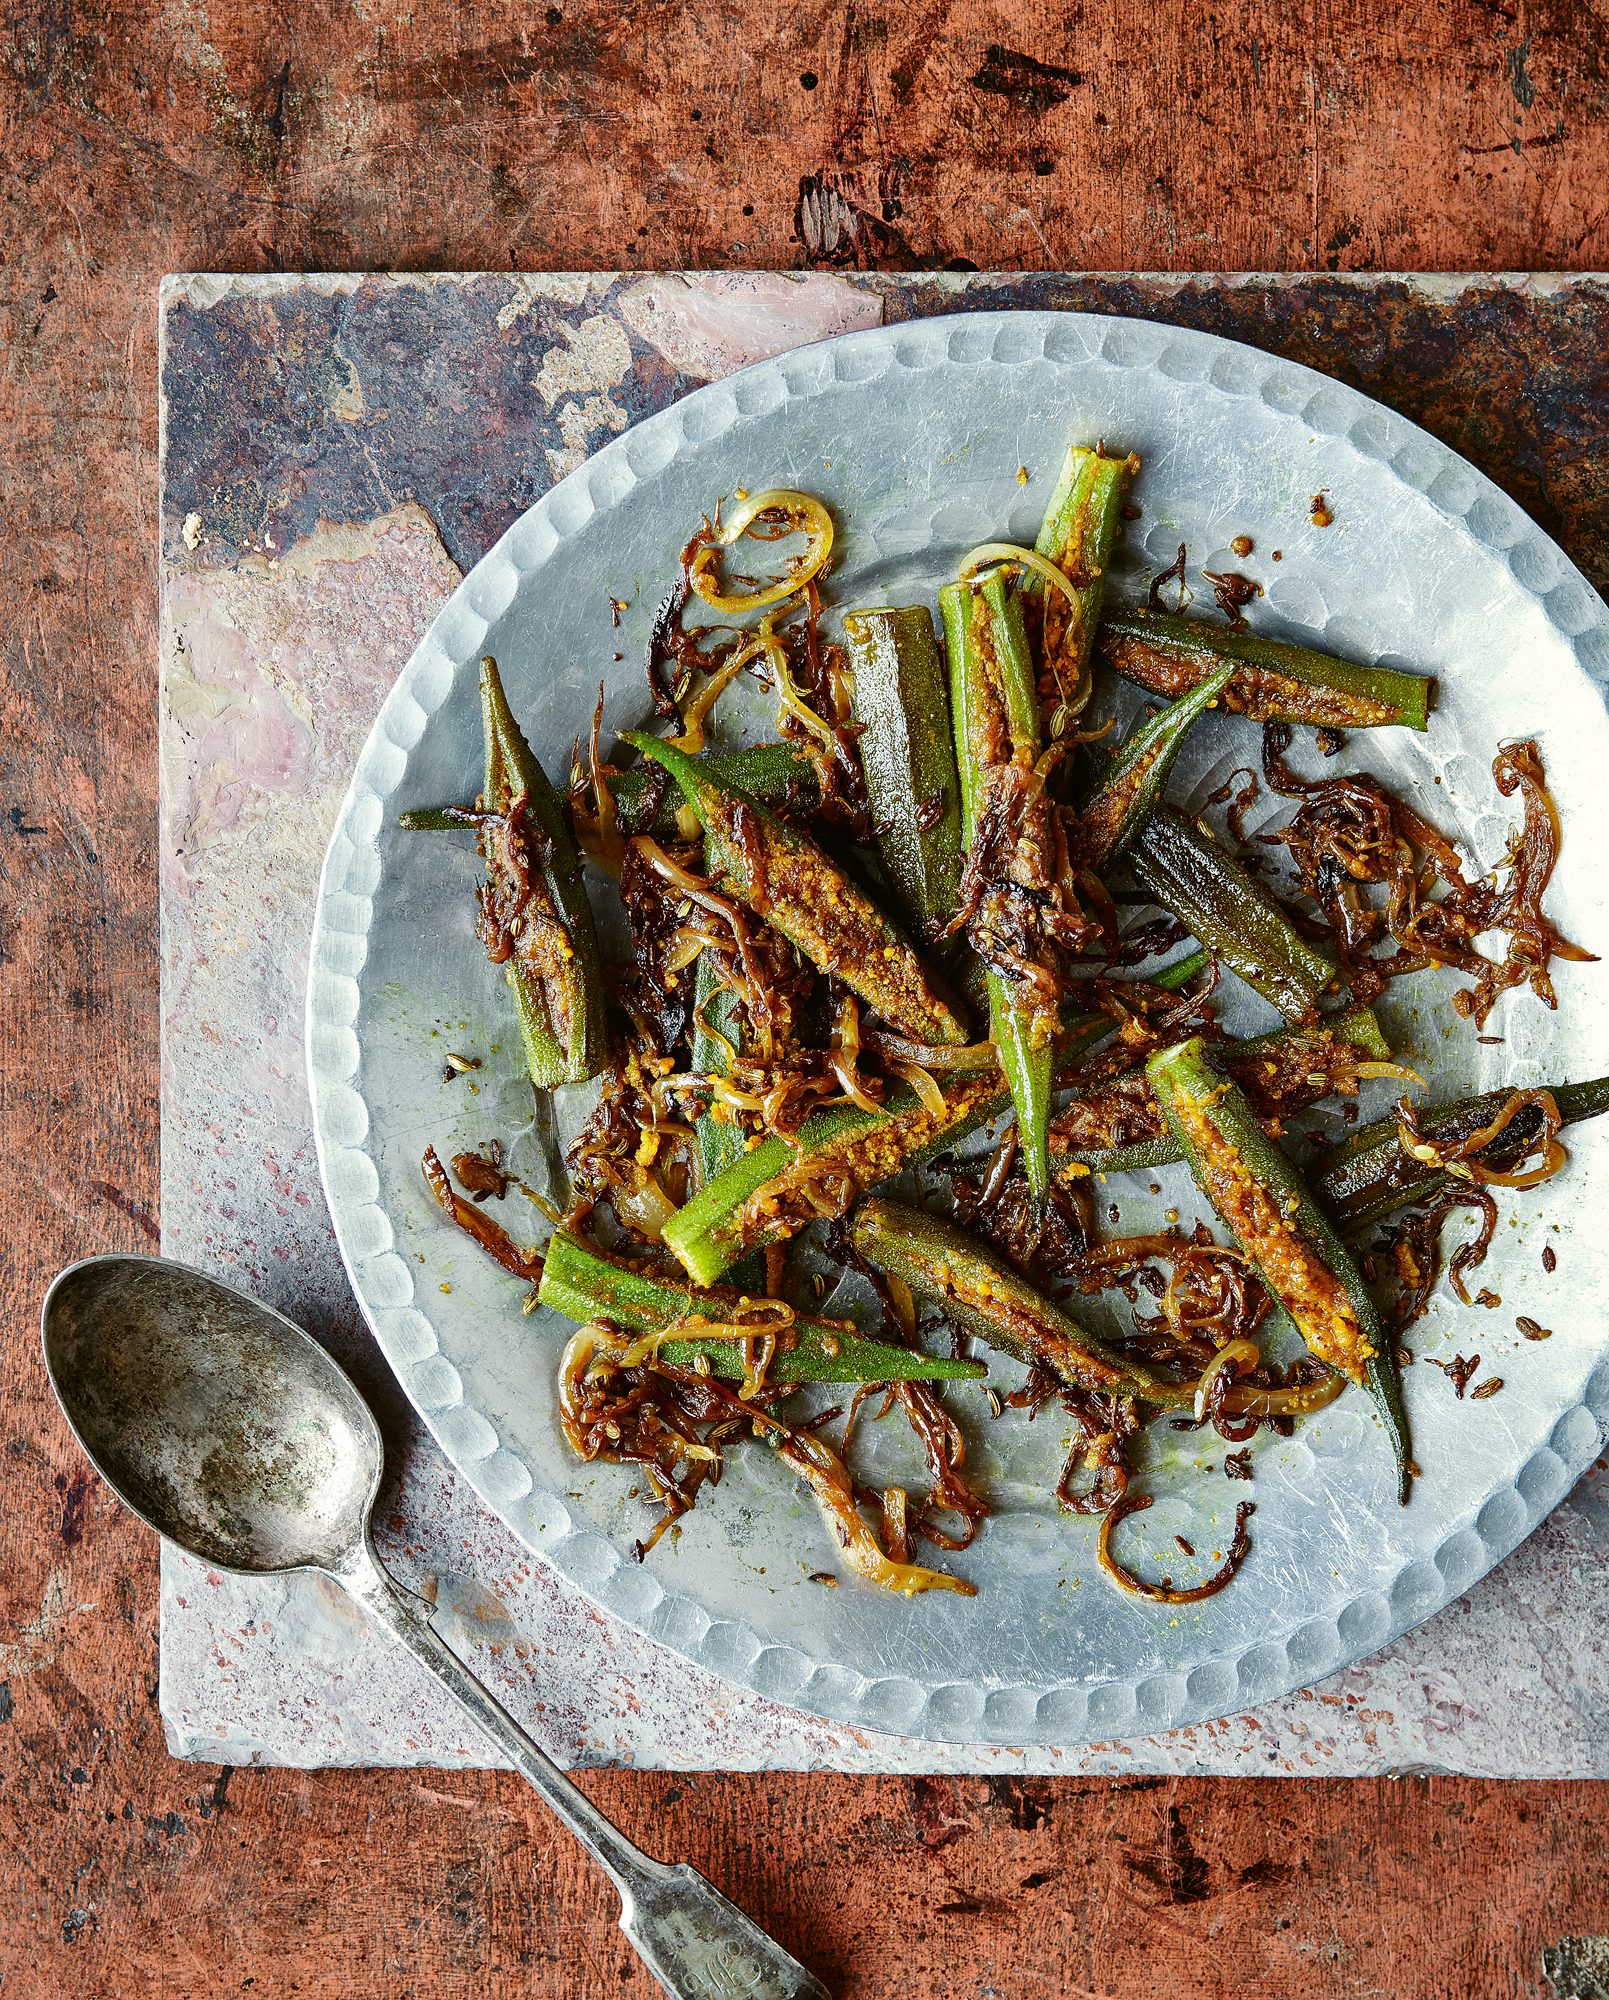 Spicy stuffed okra from Chetna's Healthy Indian by Chetna Makan (Nassima Rothacker/PA)